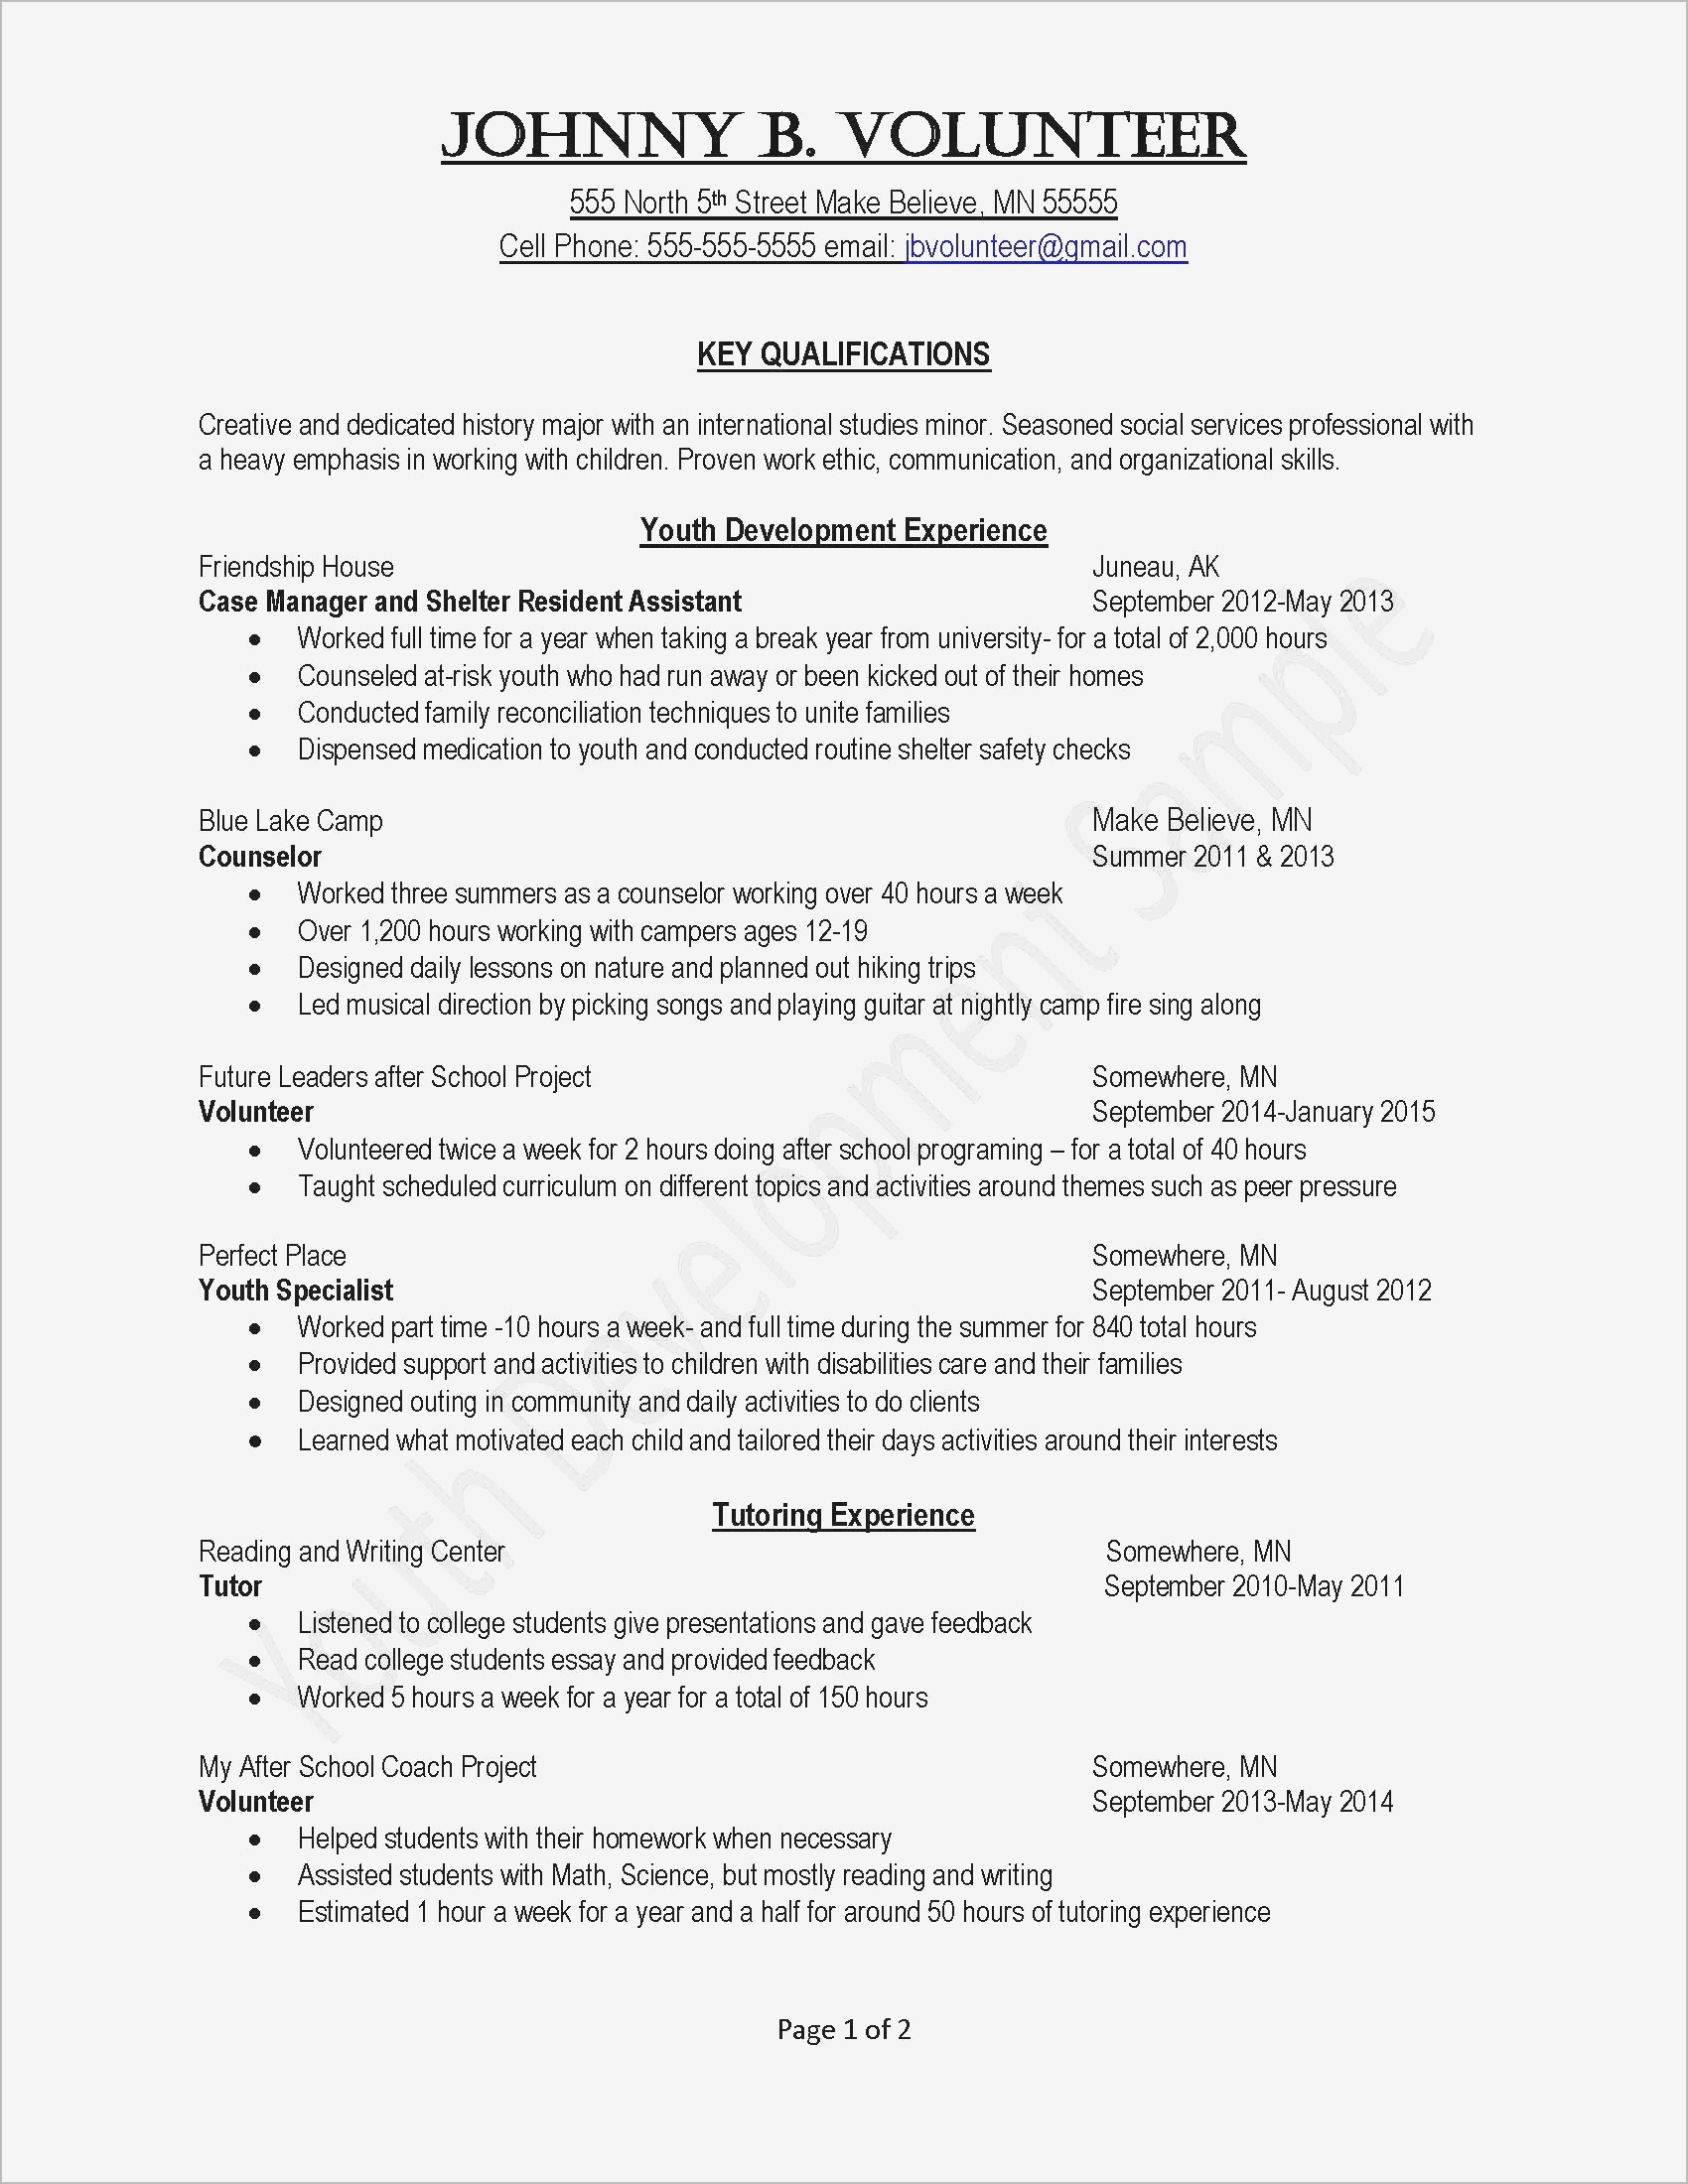 Cover Letter Template Free Google Docs - Cover Letter Examples for Resume Ideas